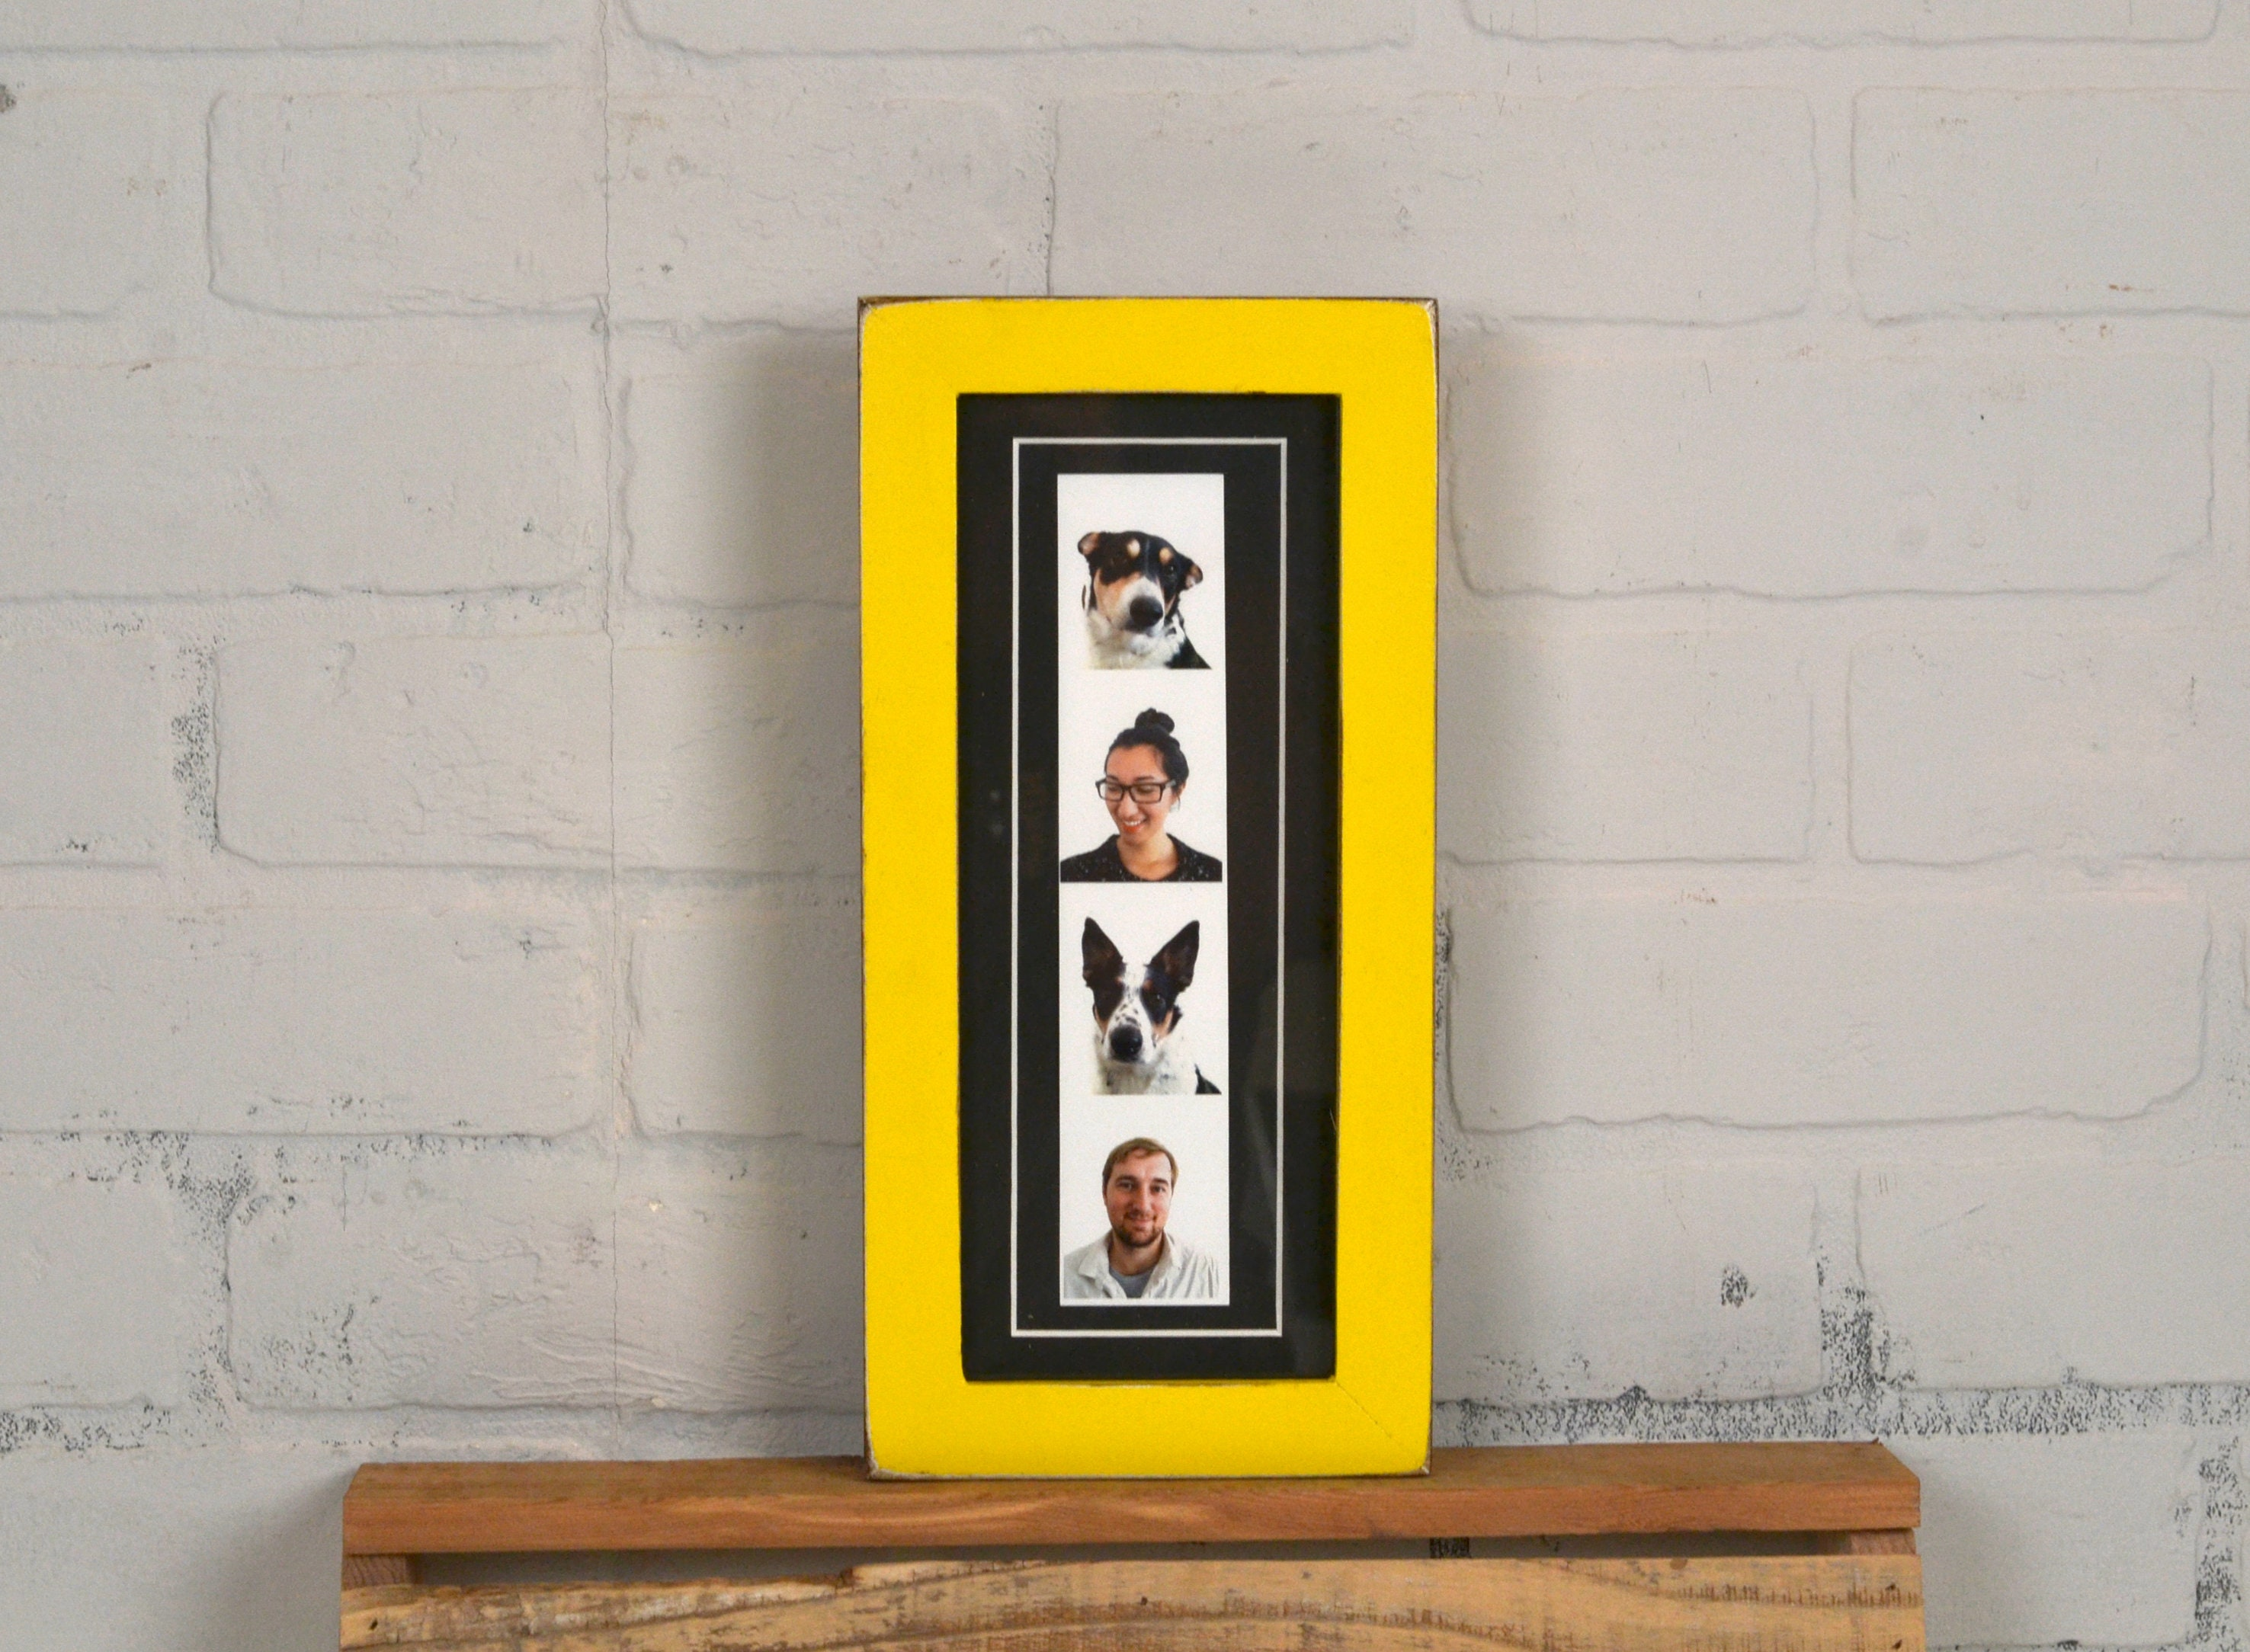 4x10 Picture Frame For Photo Booth Strip In 1x1 Flat Style And Color